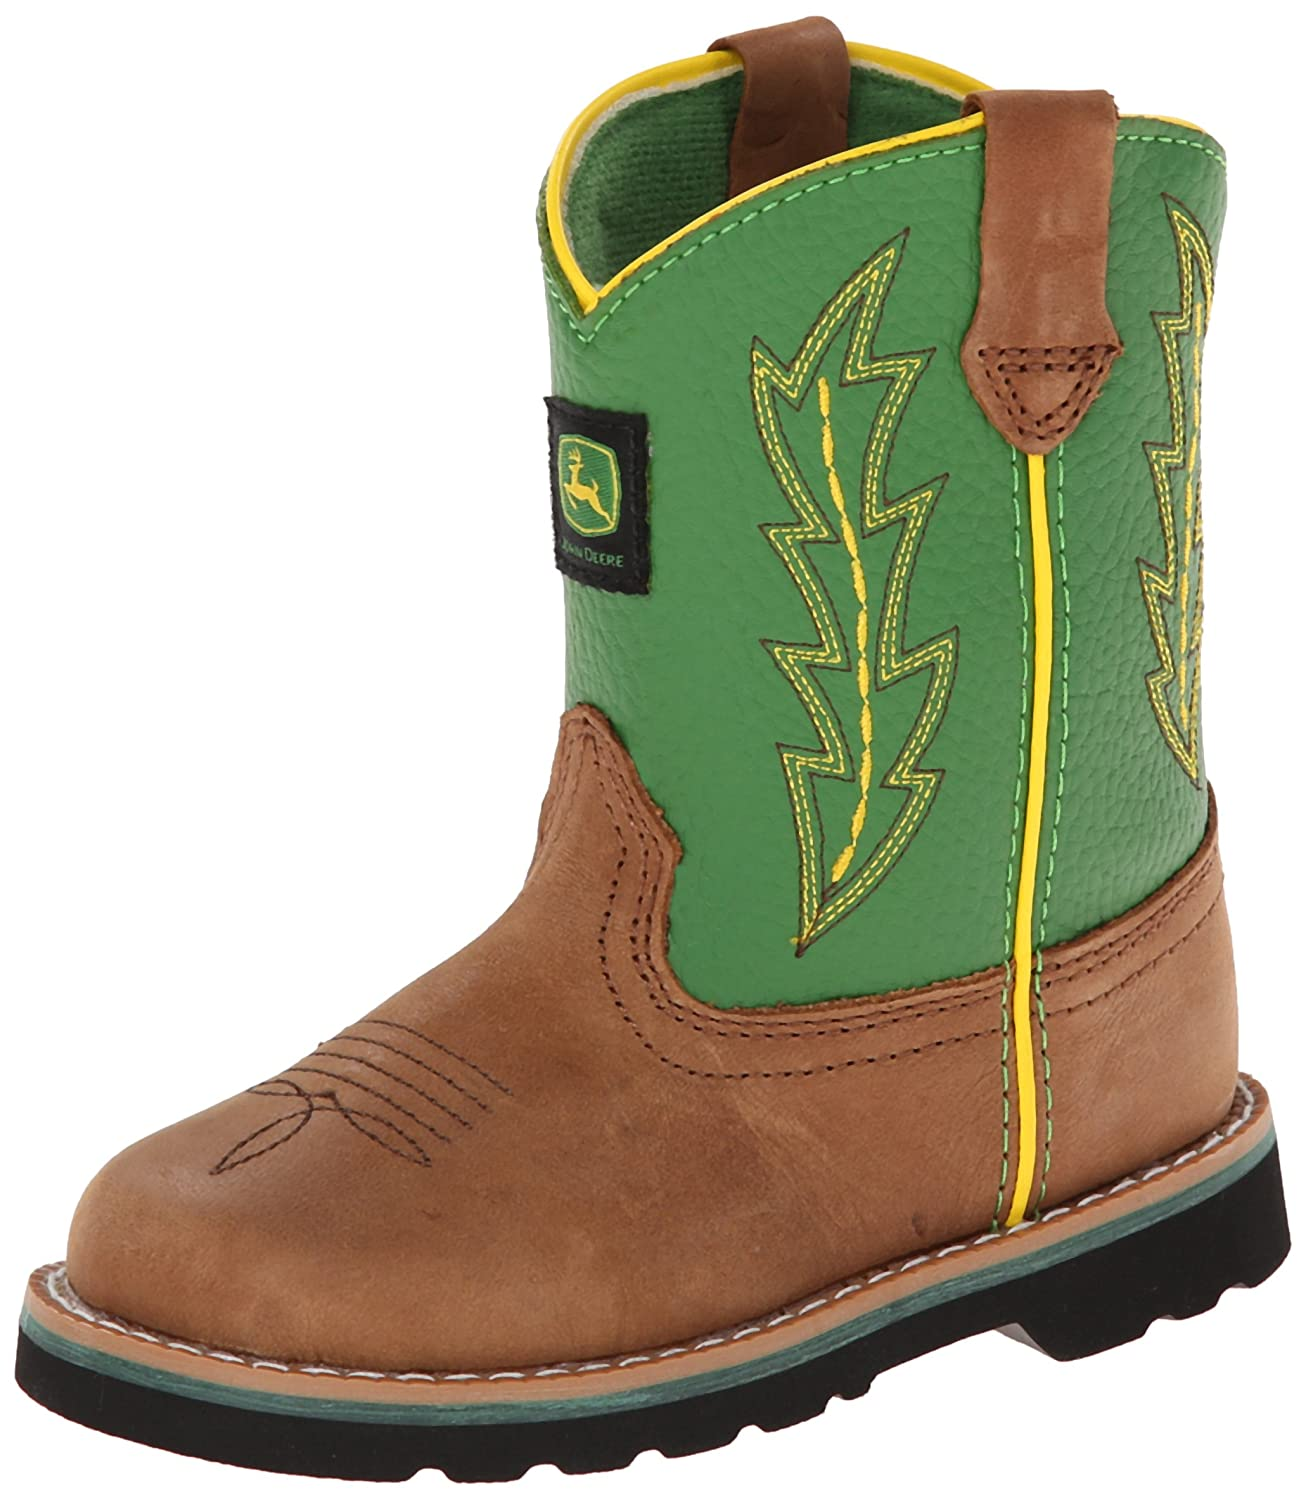 John Deere 1186 Western Boot (Toddler) JD1186